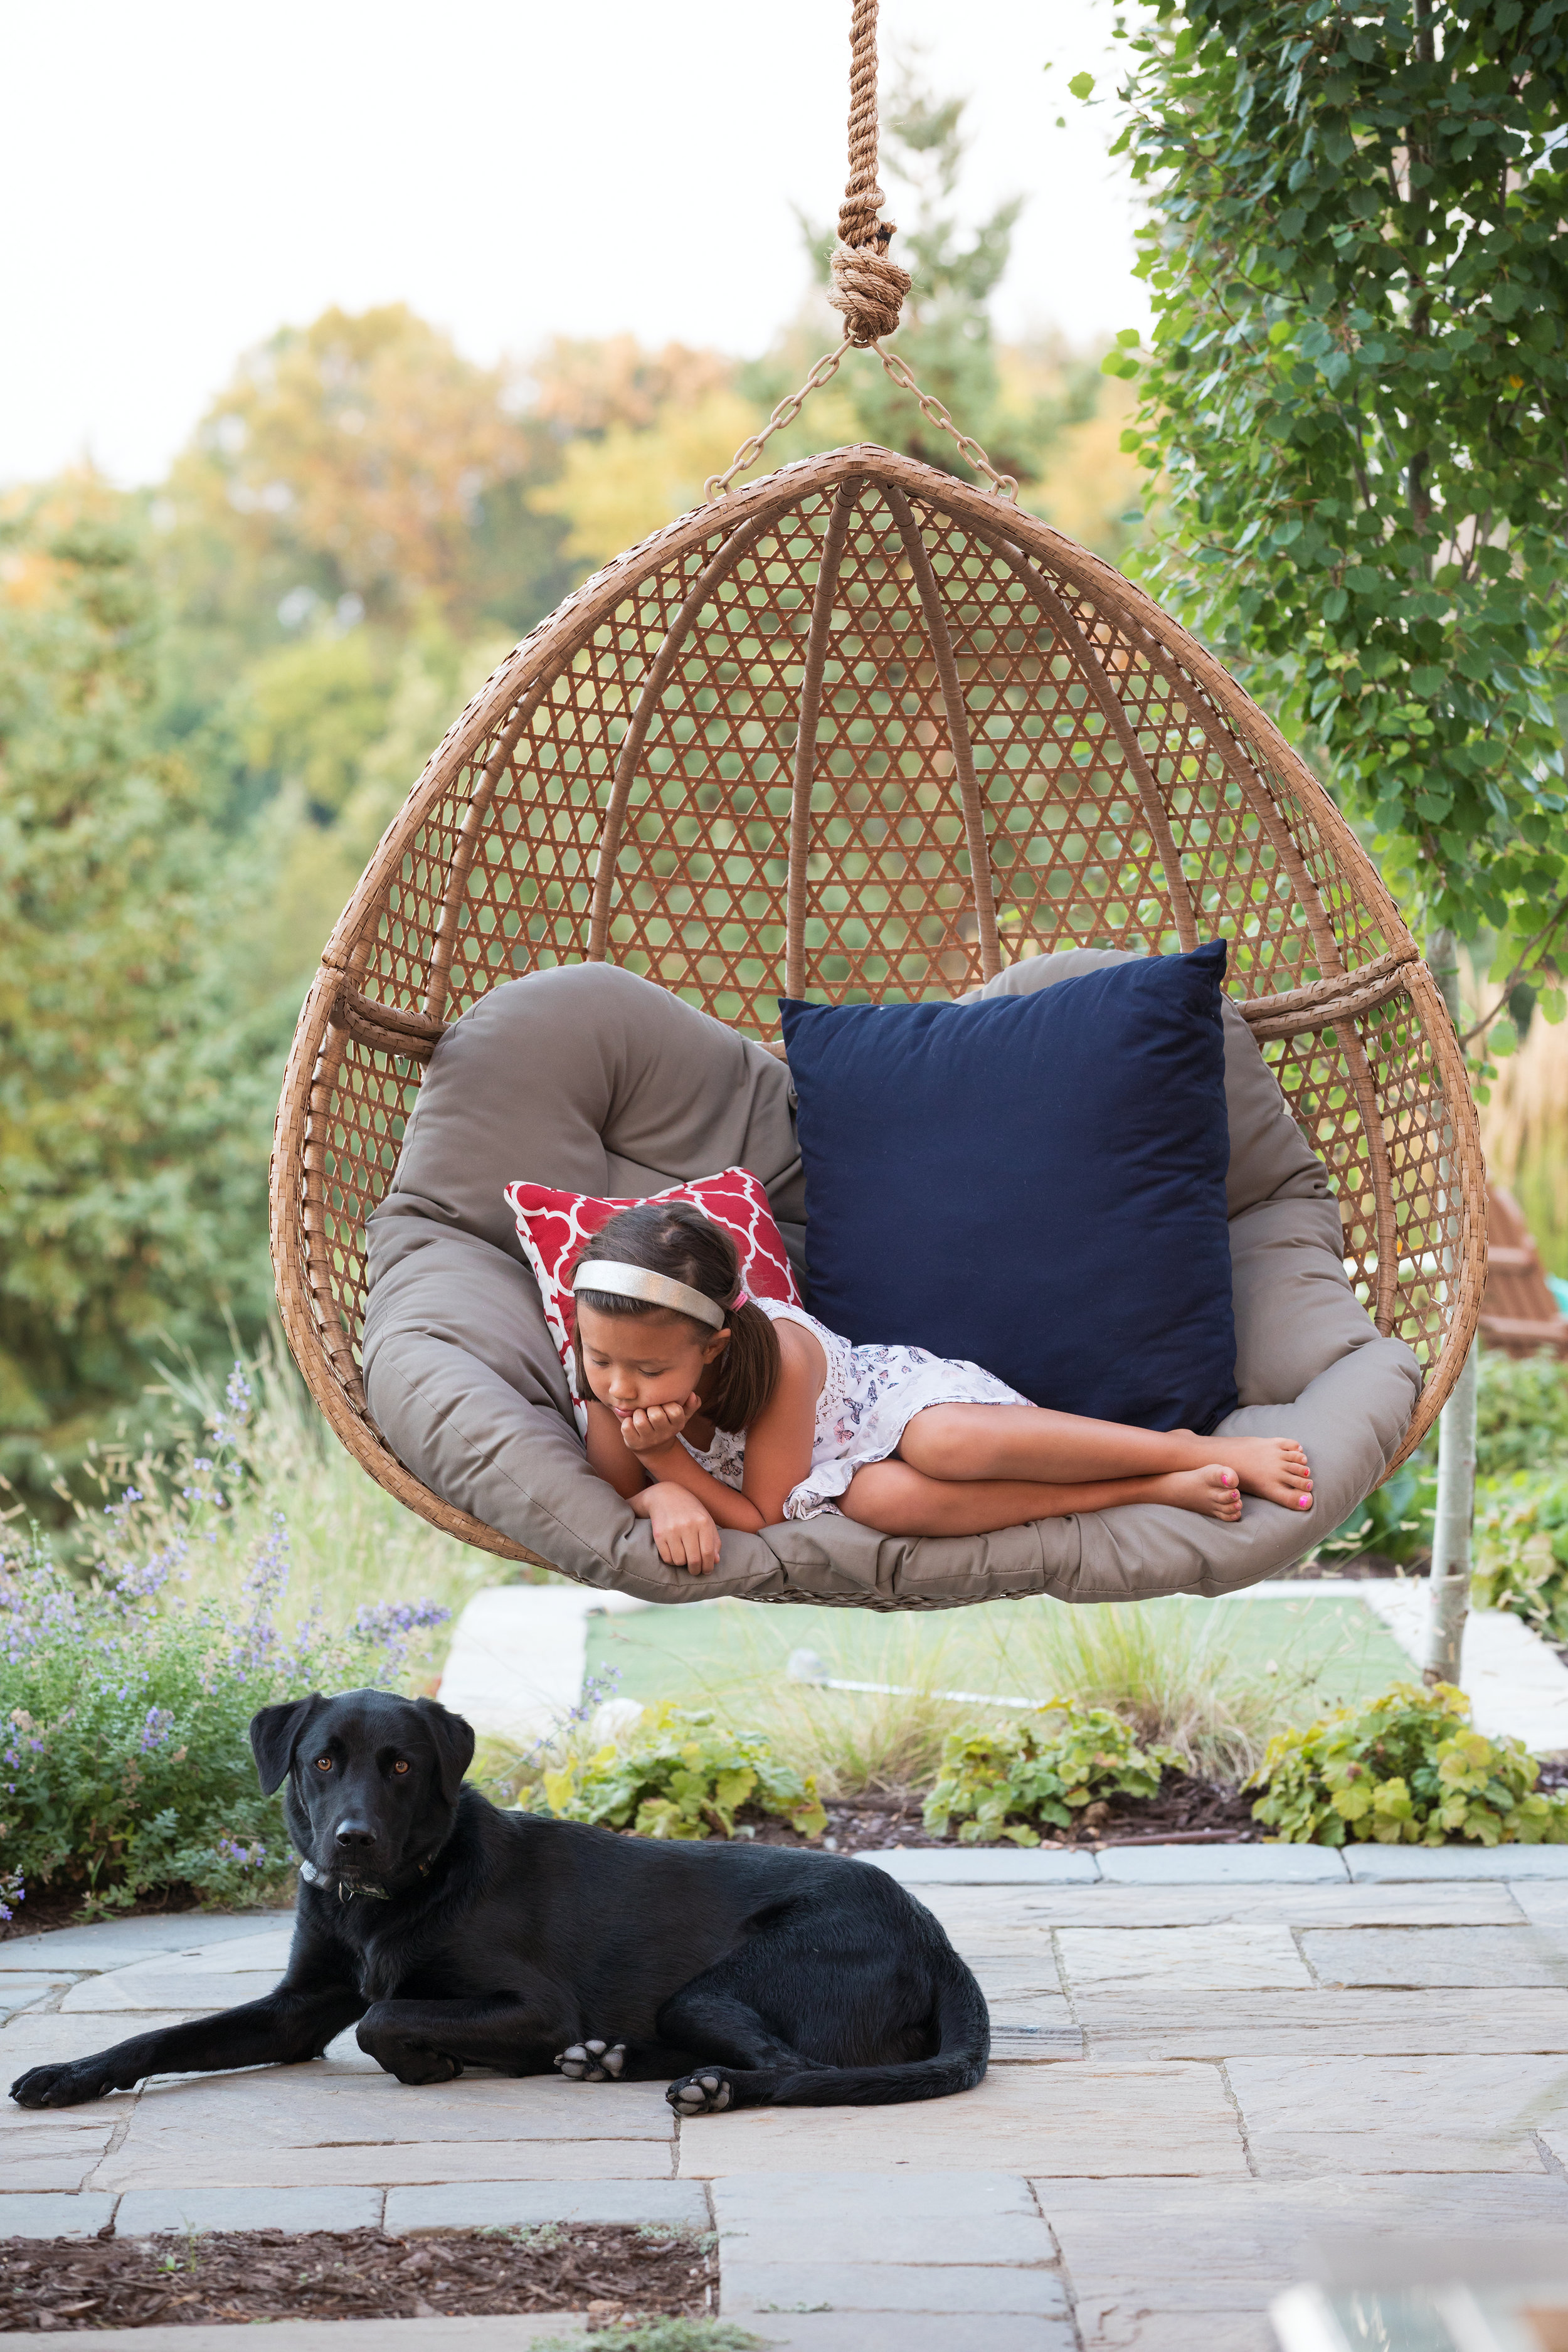 Mom's Design Build - Contemporary Outdoor Swing Chair